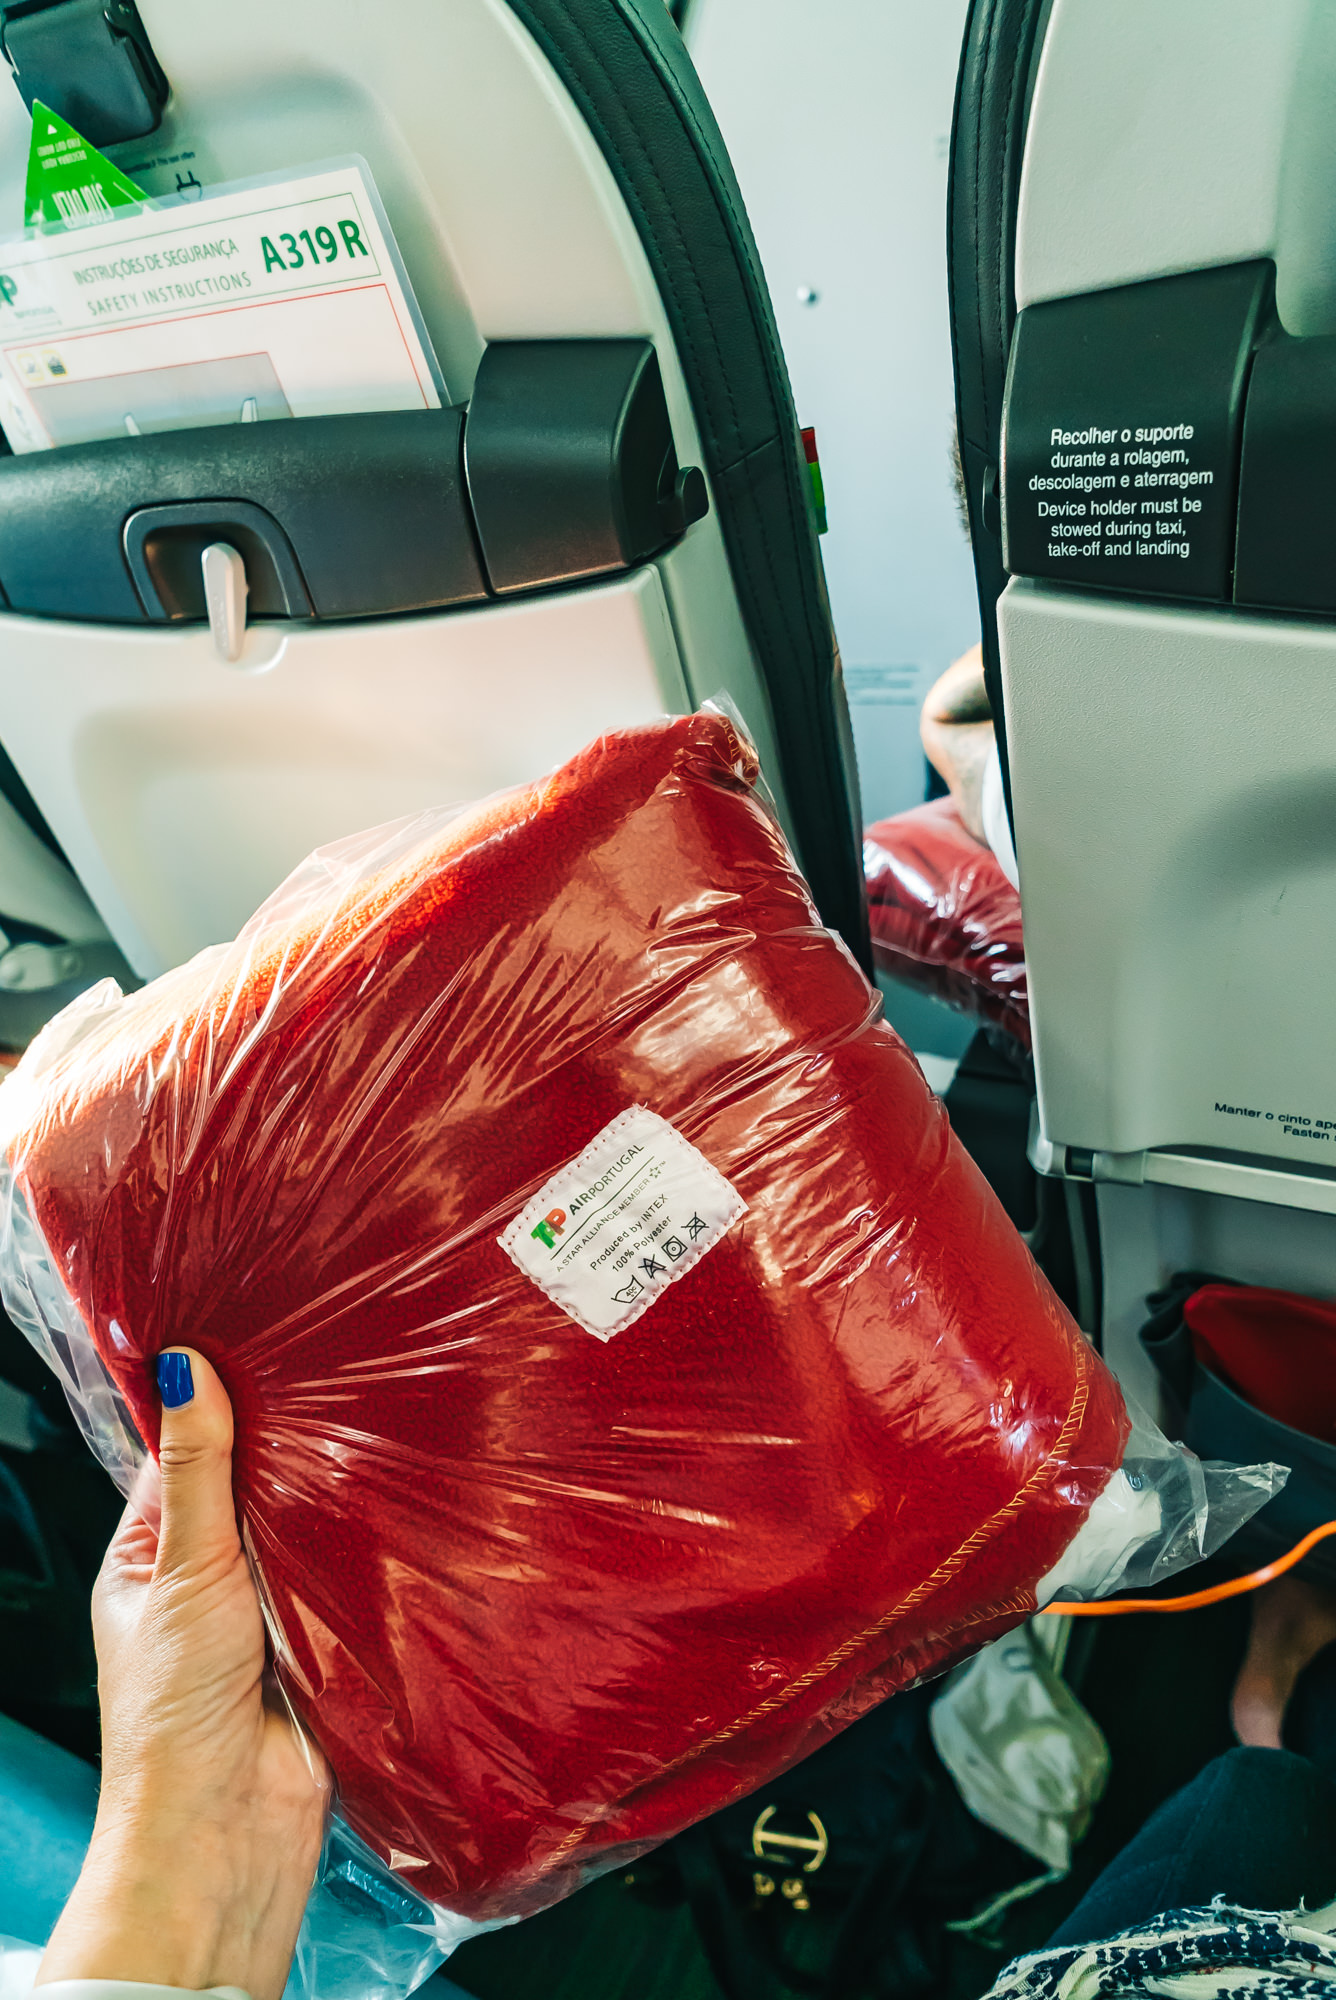 Thick, warm blankets provided on TAP Air Portugal Executive Class